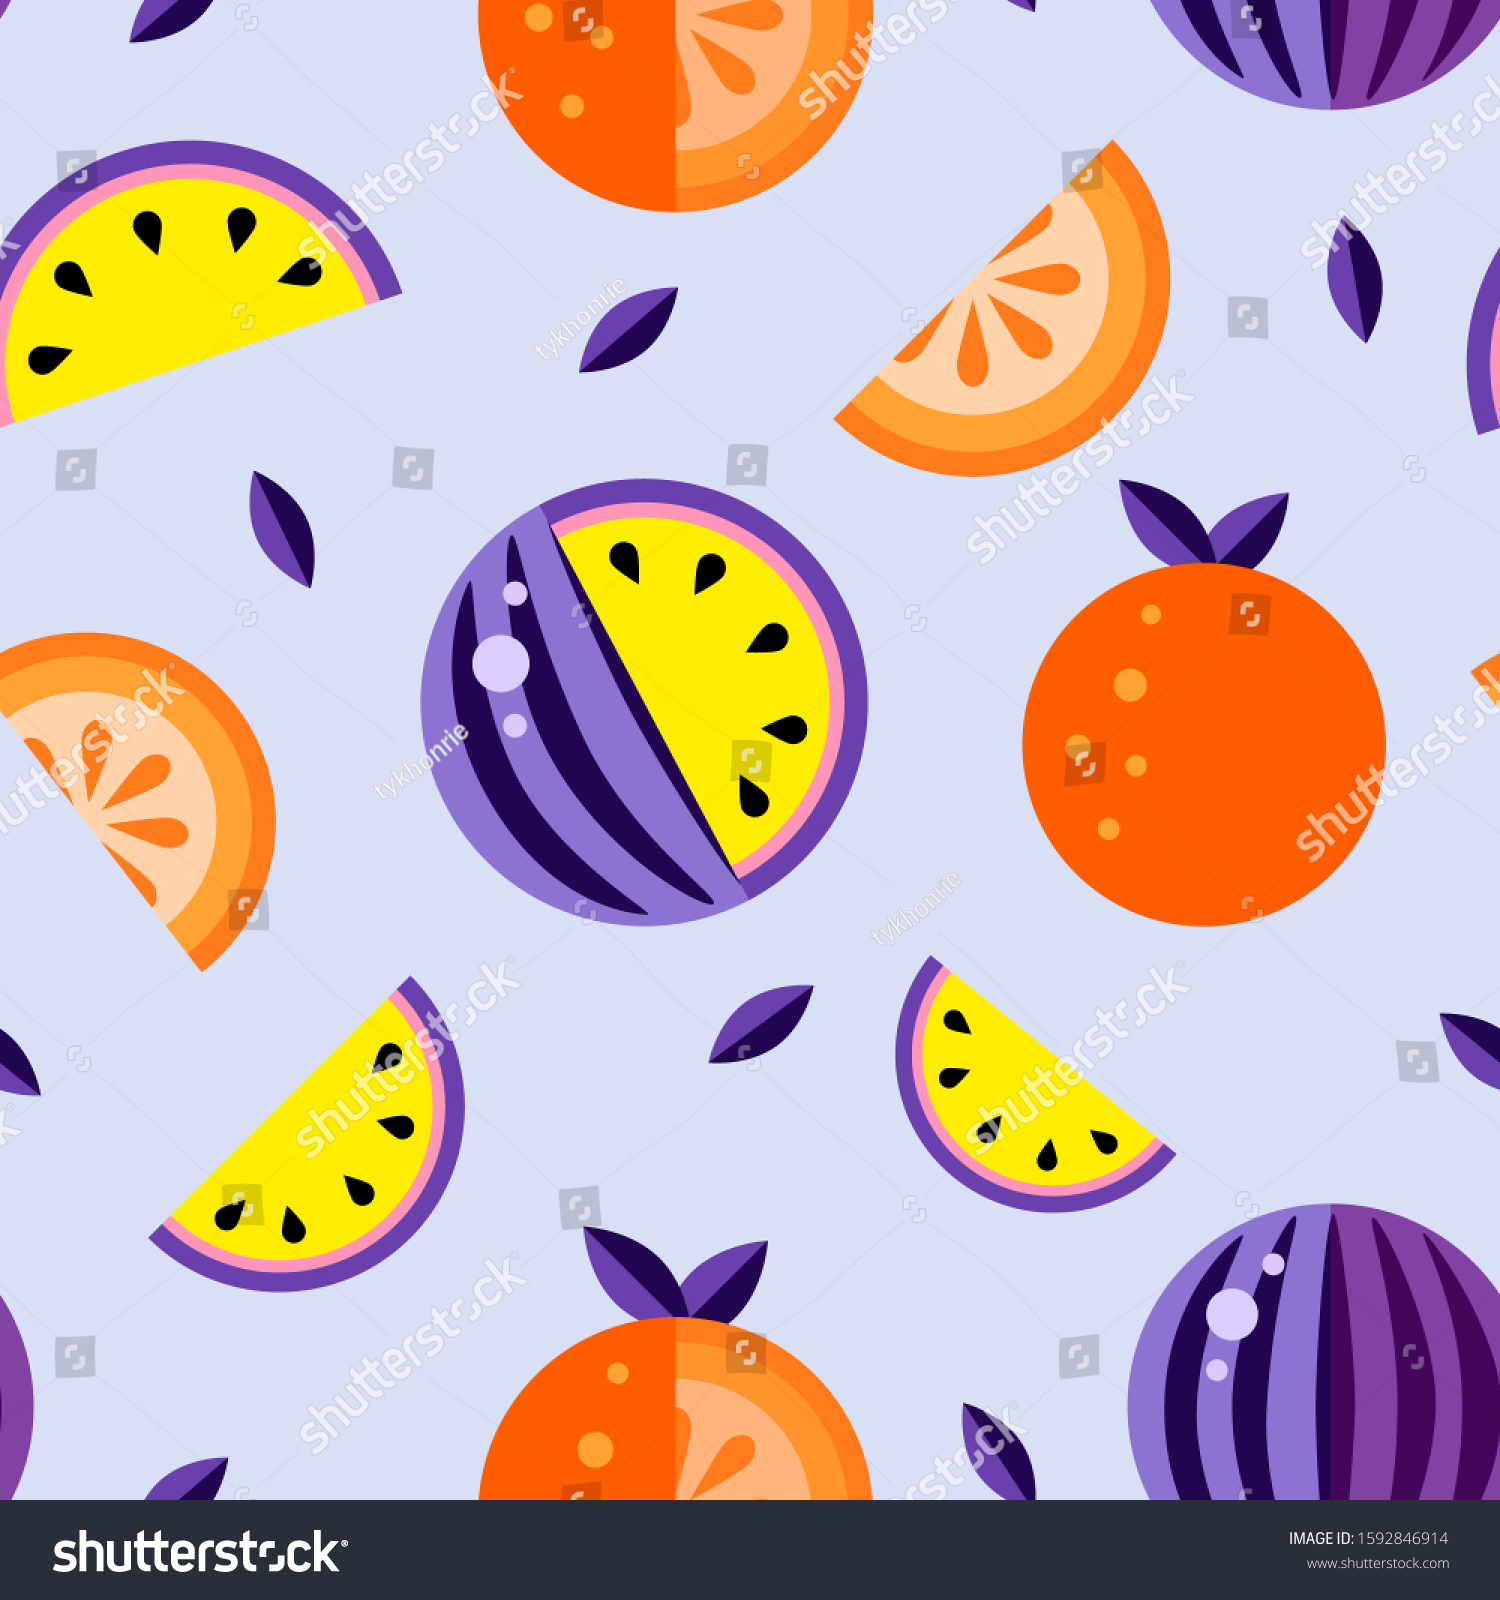 stock-photo-watermelons-violet-yellow-or